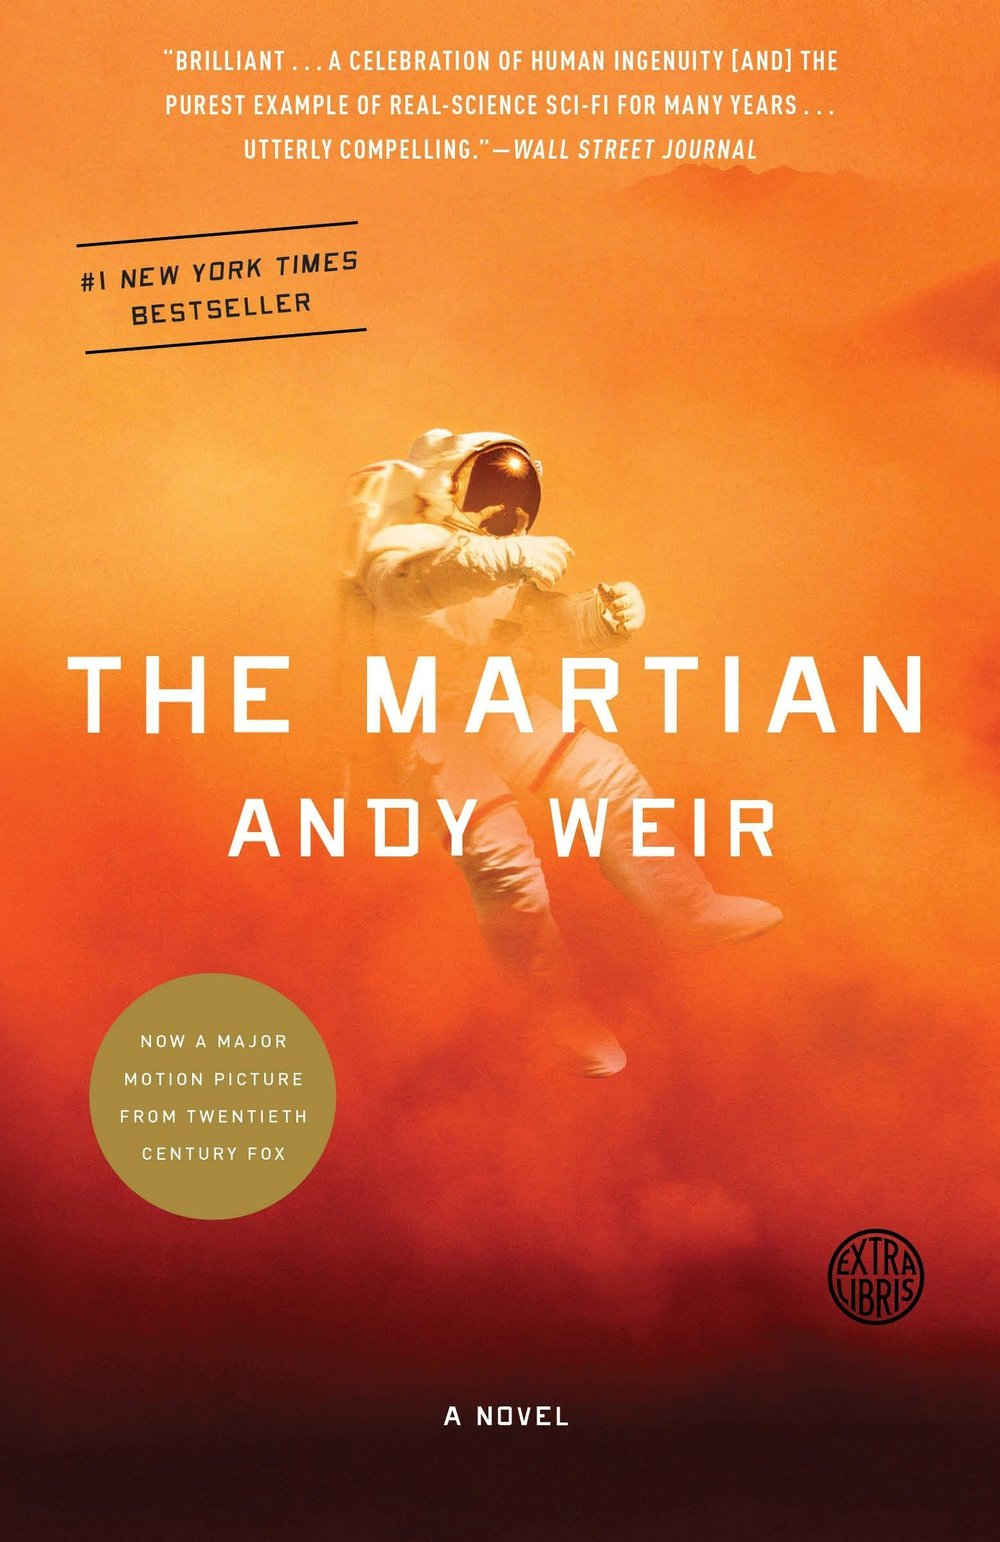 The Martian - By Andy WeirIf you haven't read it (or seen the movie), you've certainly heard of it. This book is an absolute joy to read because of its strong characters, terrifying setting (yay Mars!), and adherence to science realism.Description:Six days ago, astronaut Mark Watney became one of the first people to walk on Mars.Now, he's sure he'll be the first person to die there.After a dust storm nearly kills him and forces his crew to evacuate while thinking him dead, Mark finds himself stranded and completely alone with no way to even signal Earth that he's alive—and even if he could get word out, his supplies would be gone long before a rescue could arrive.